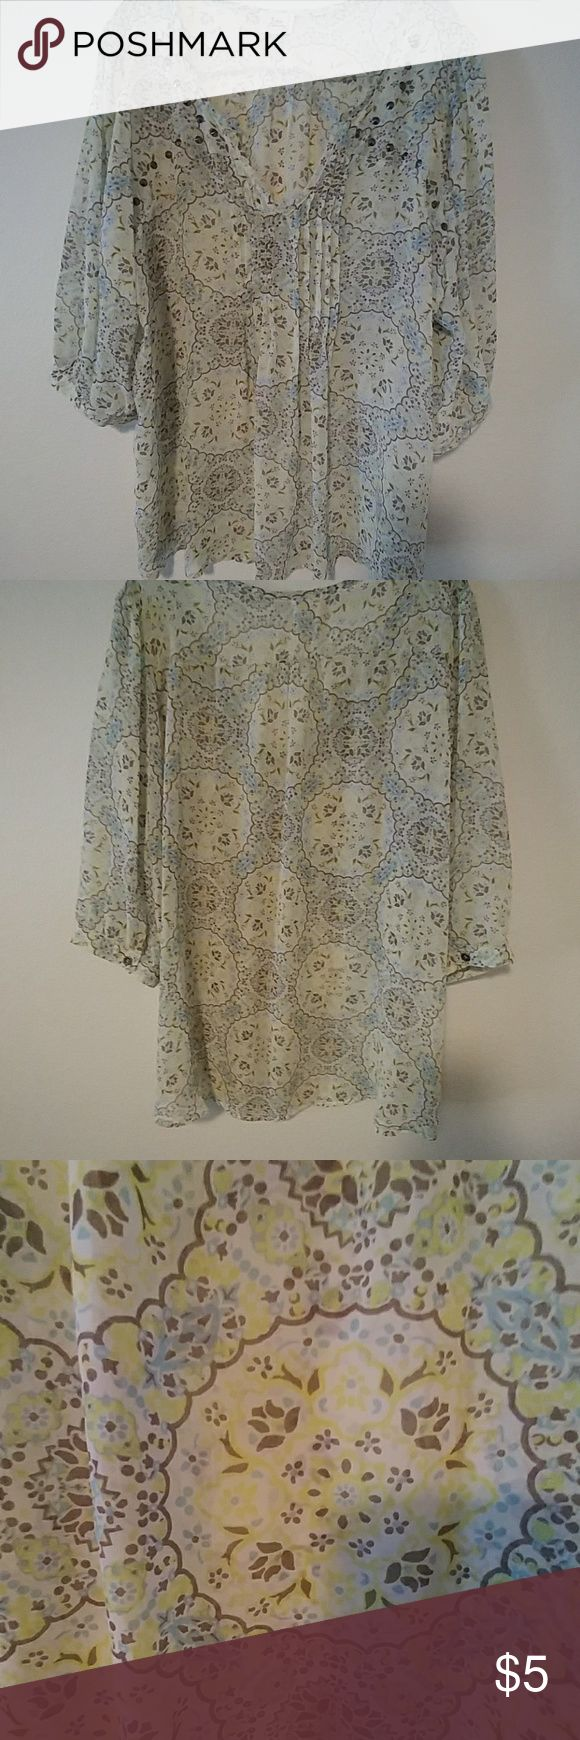 Sheer colorful XXL Top Only wore once Juniors XXL Top, no rips or stains Tops Blouses